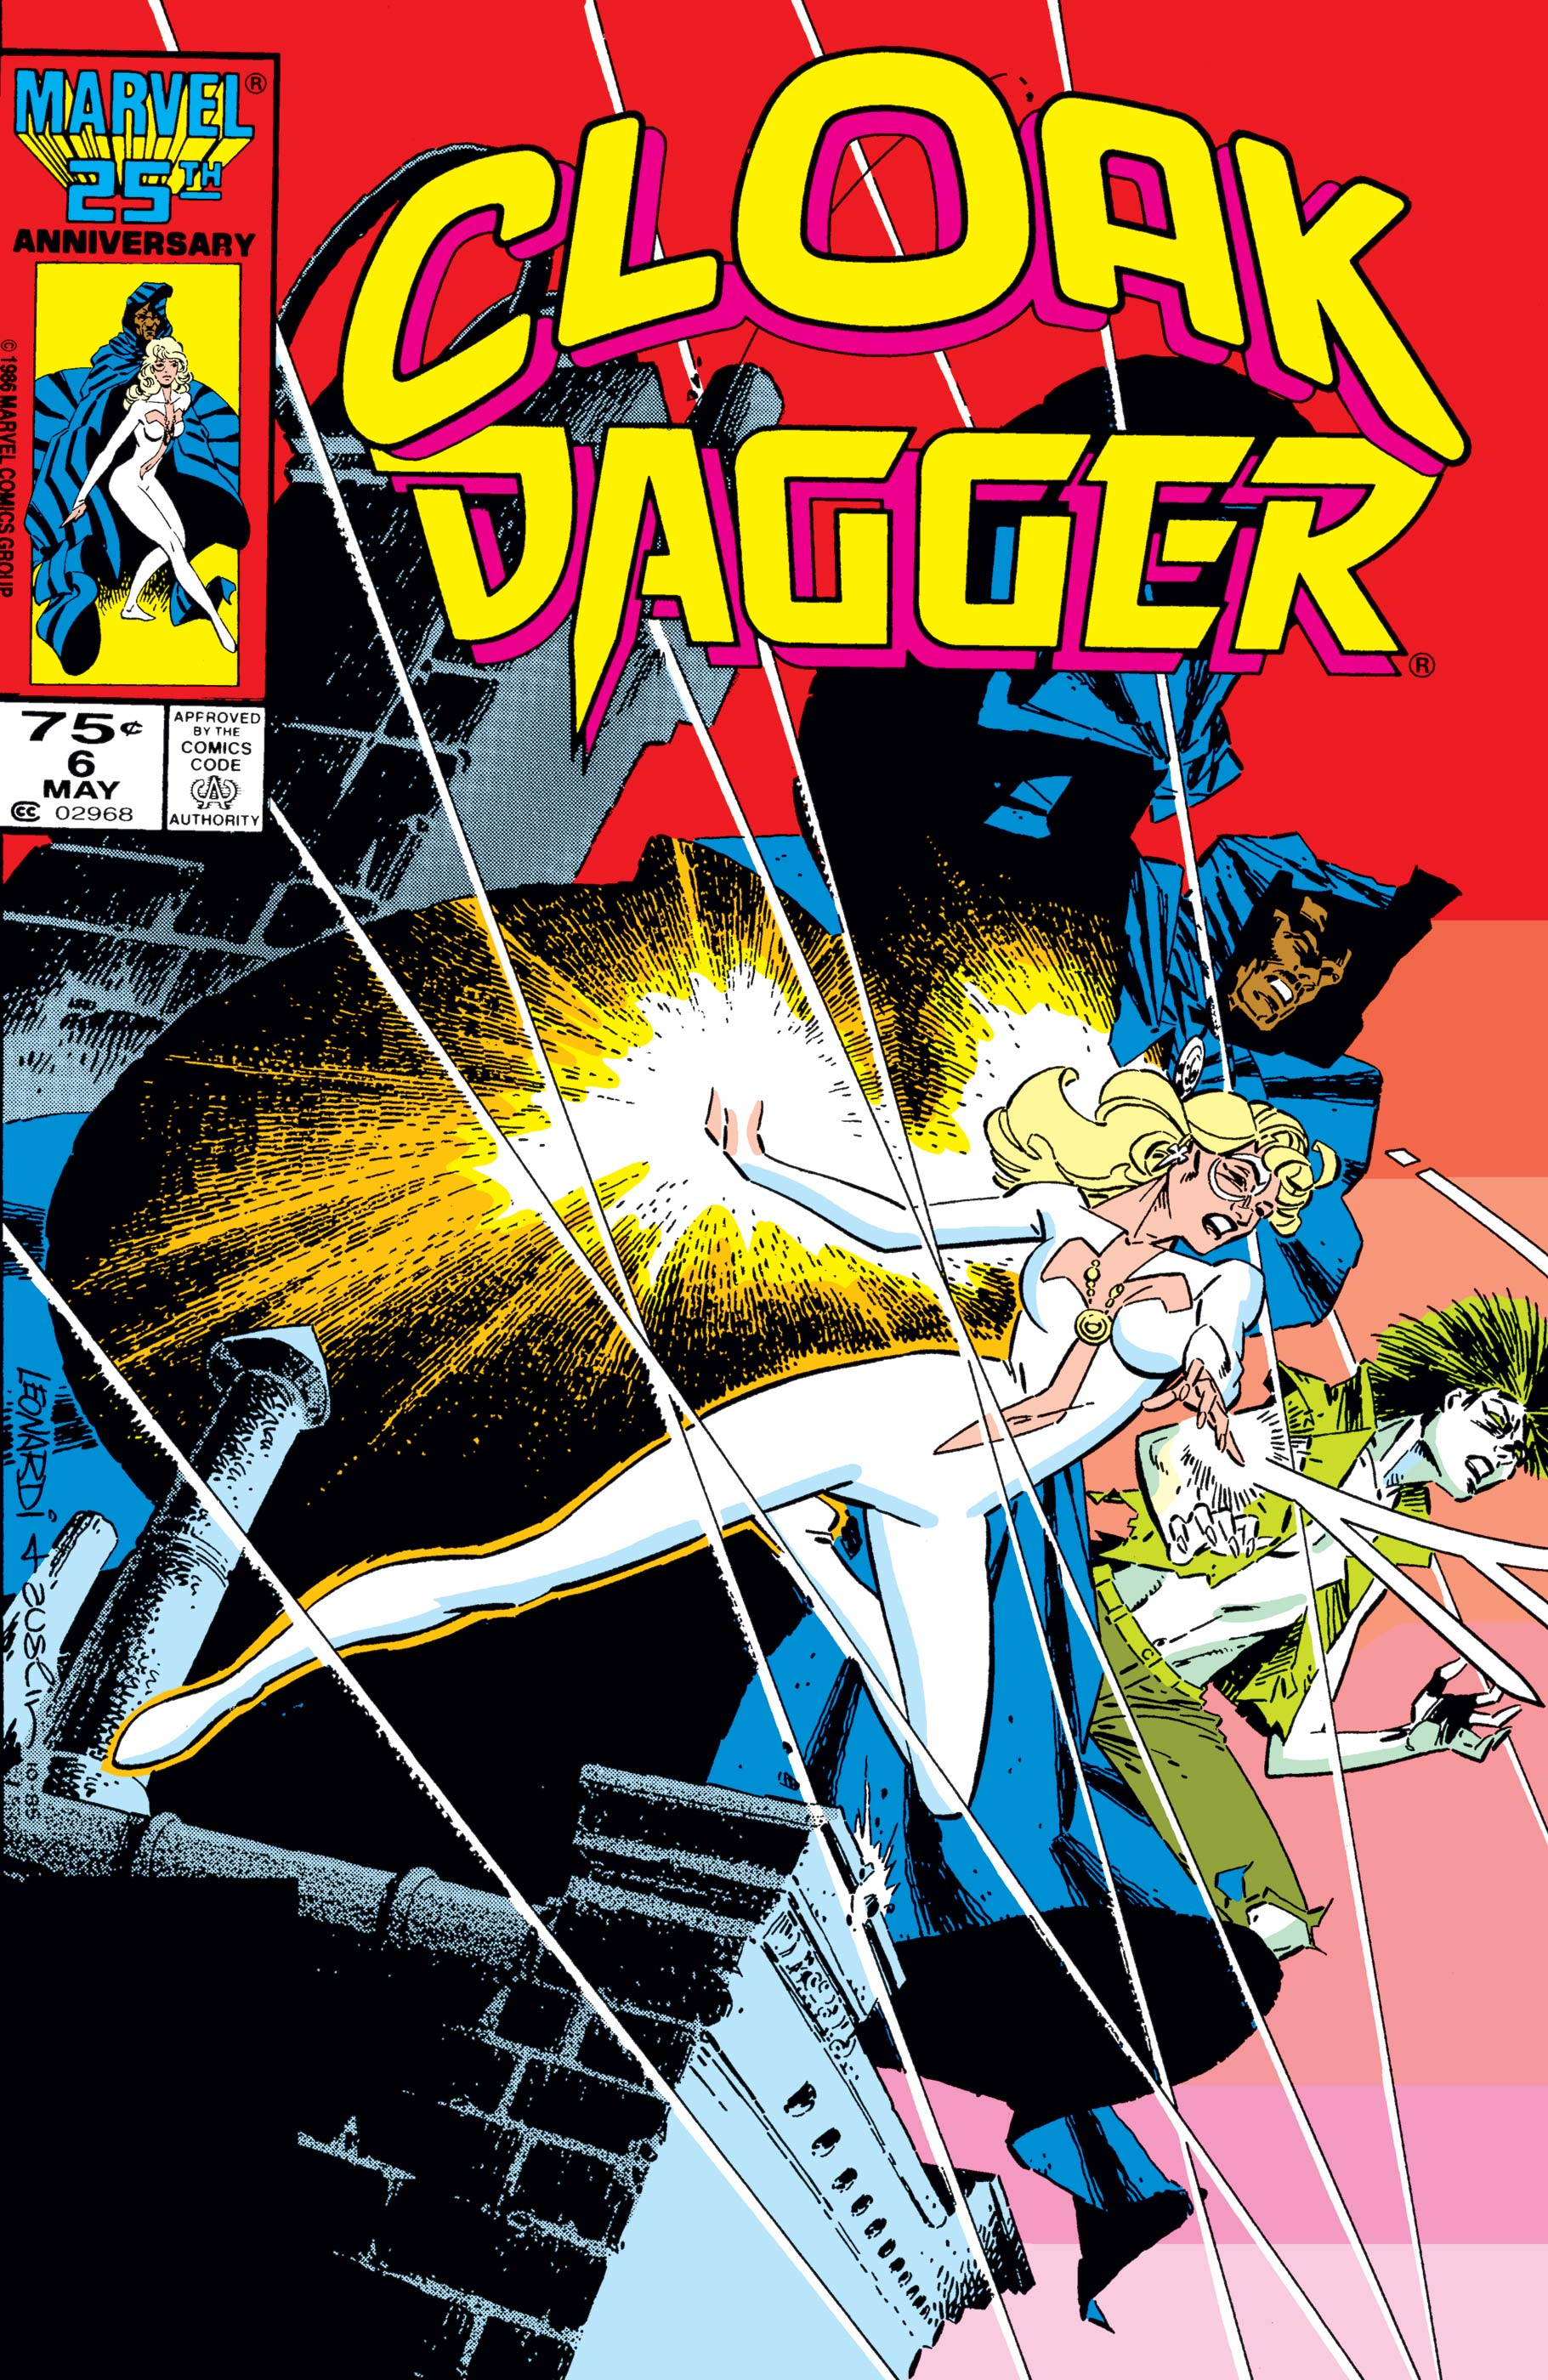 Cloak and Dagger (1985) #6